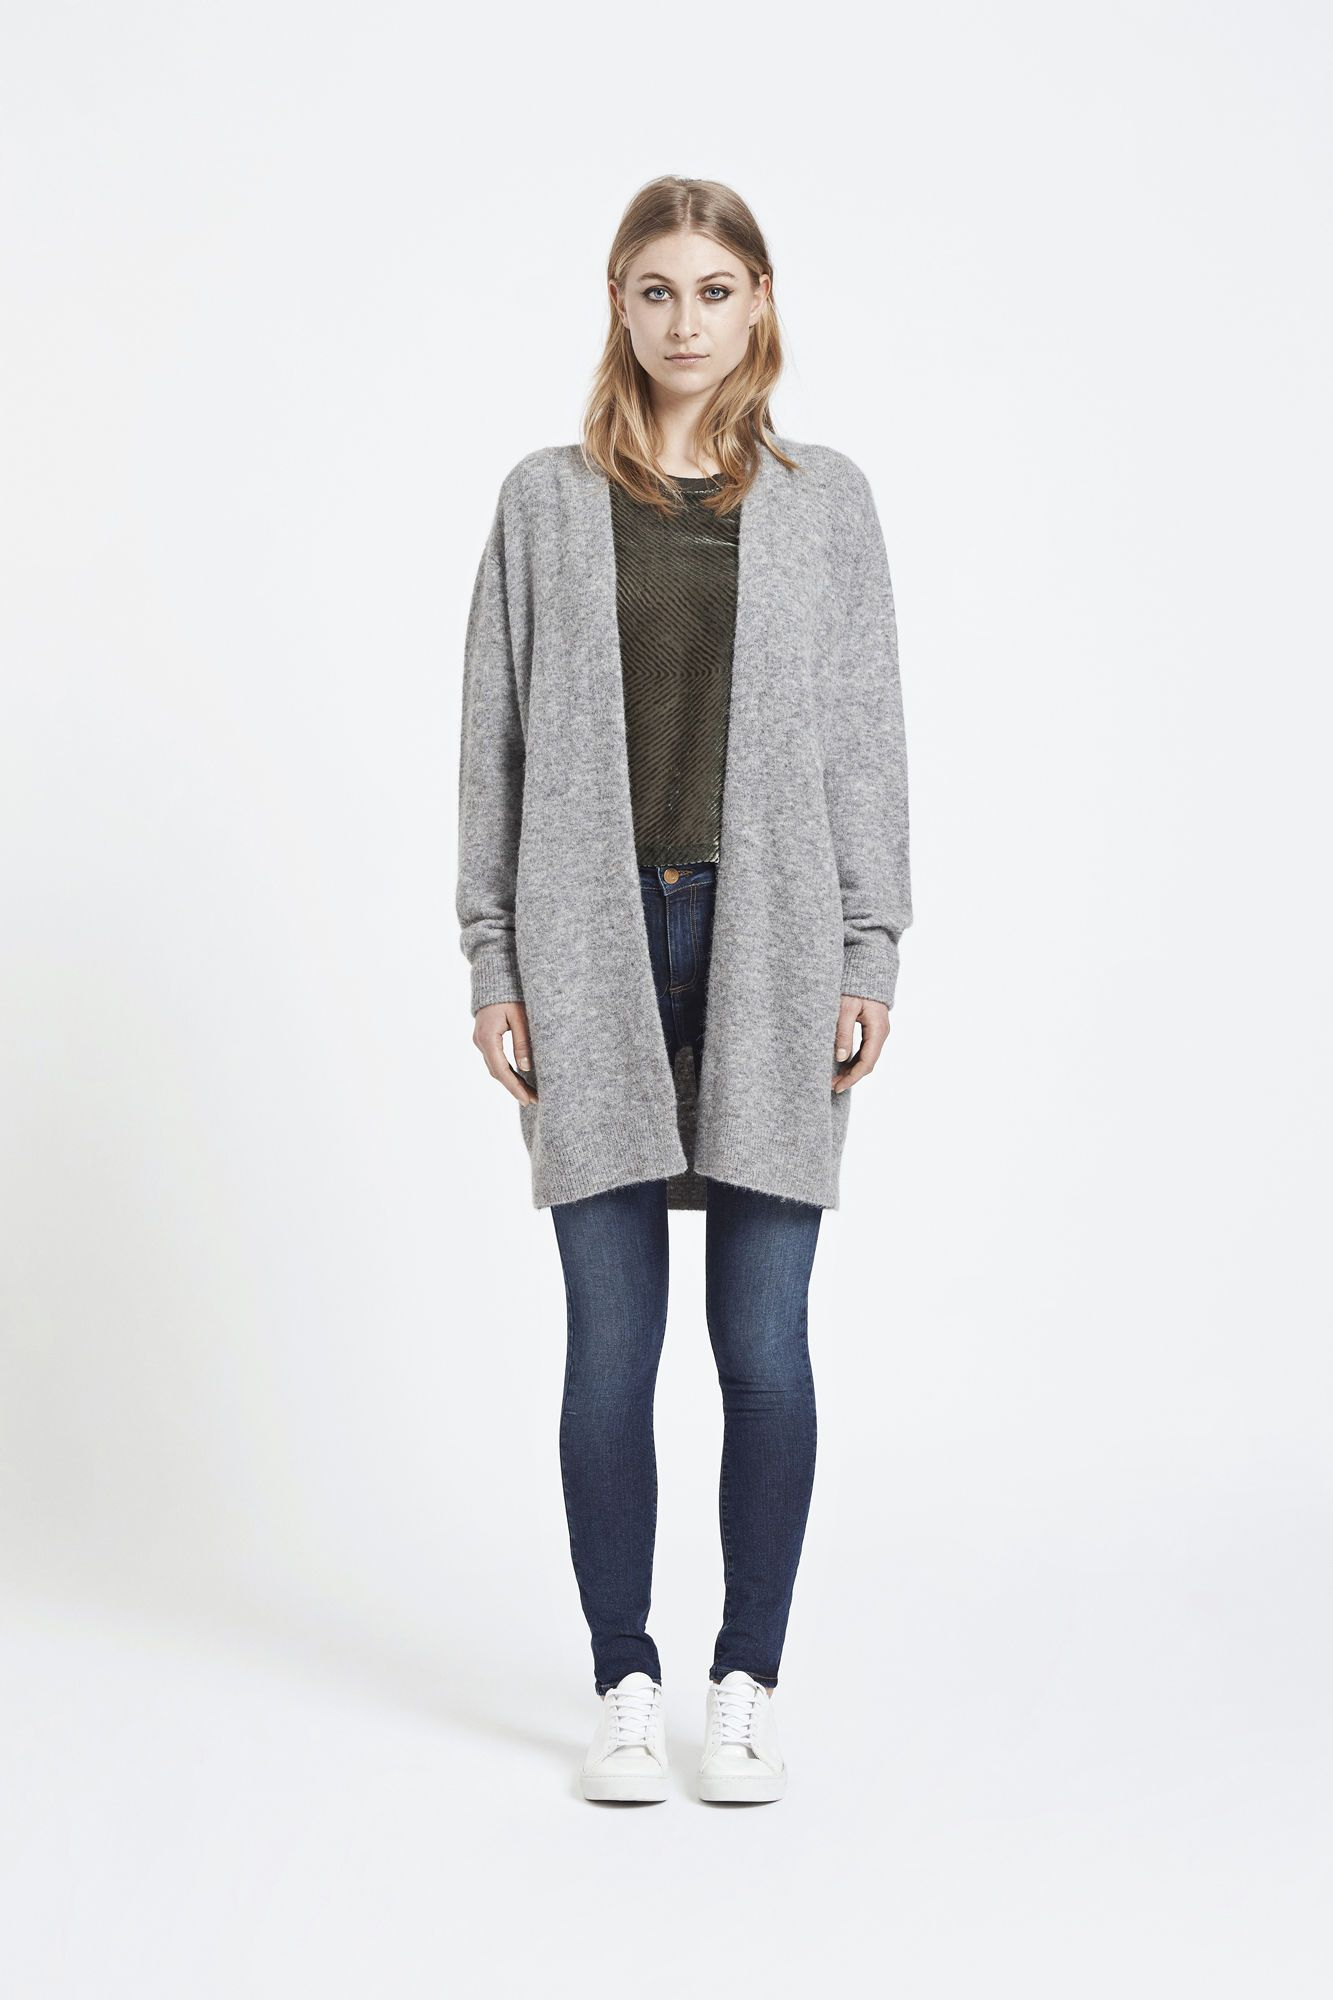 Nor cardigan 7355, GREY MEL. Kr 1599